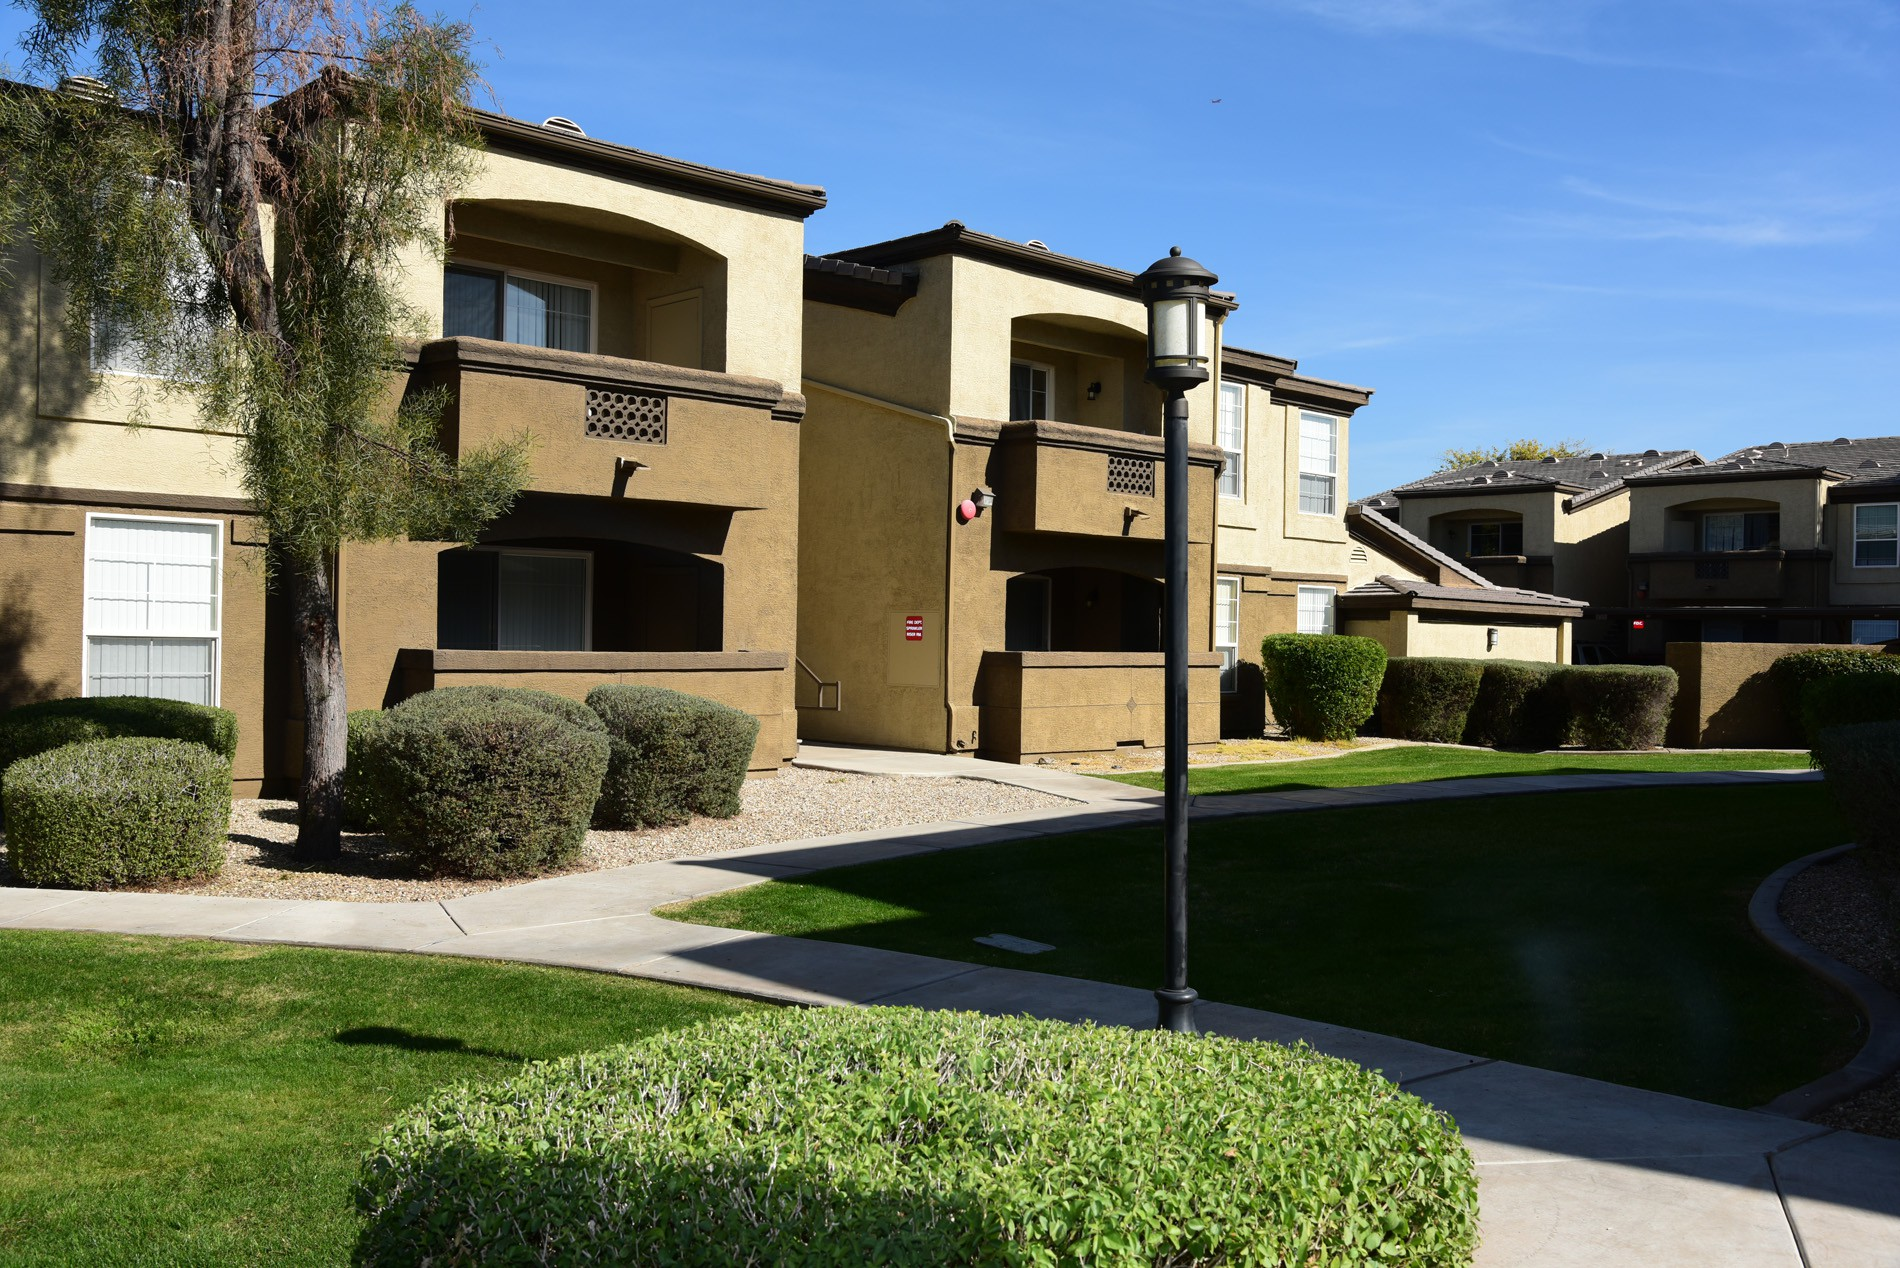 Tamarron Apartments rental